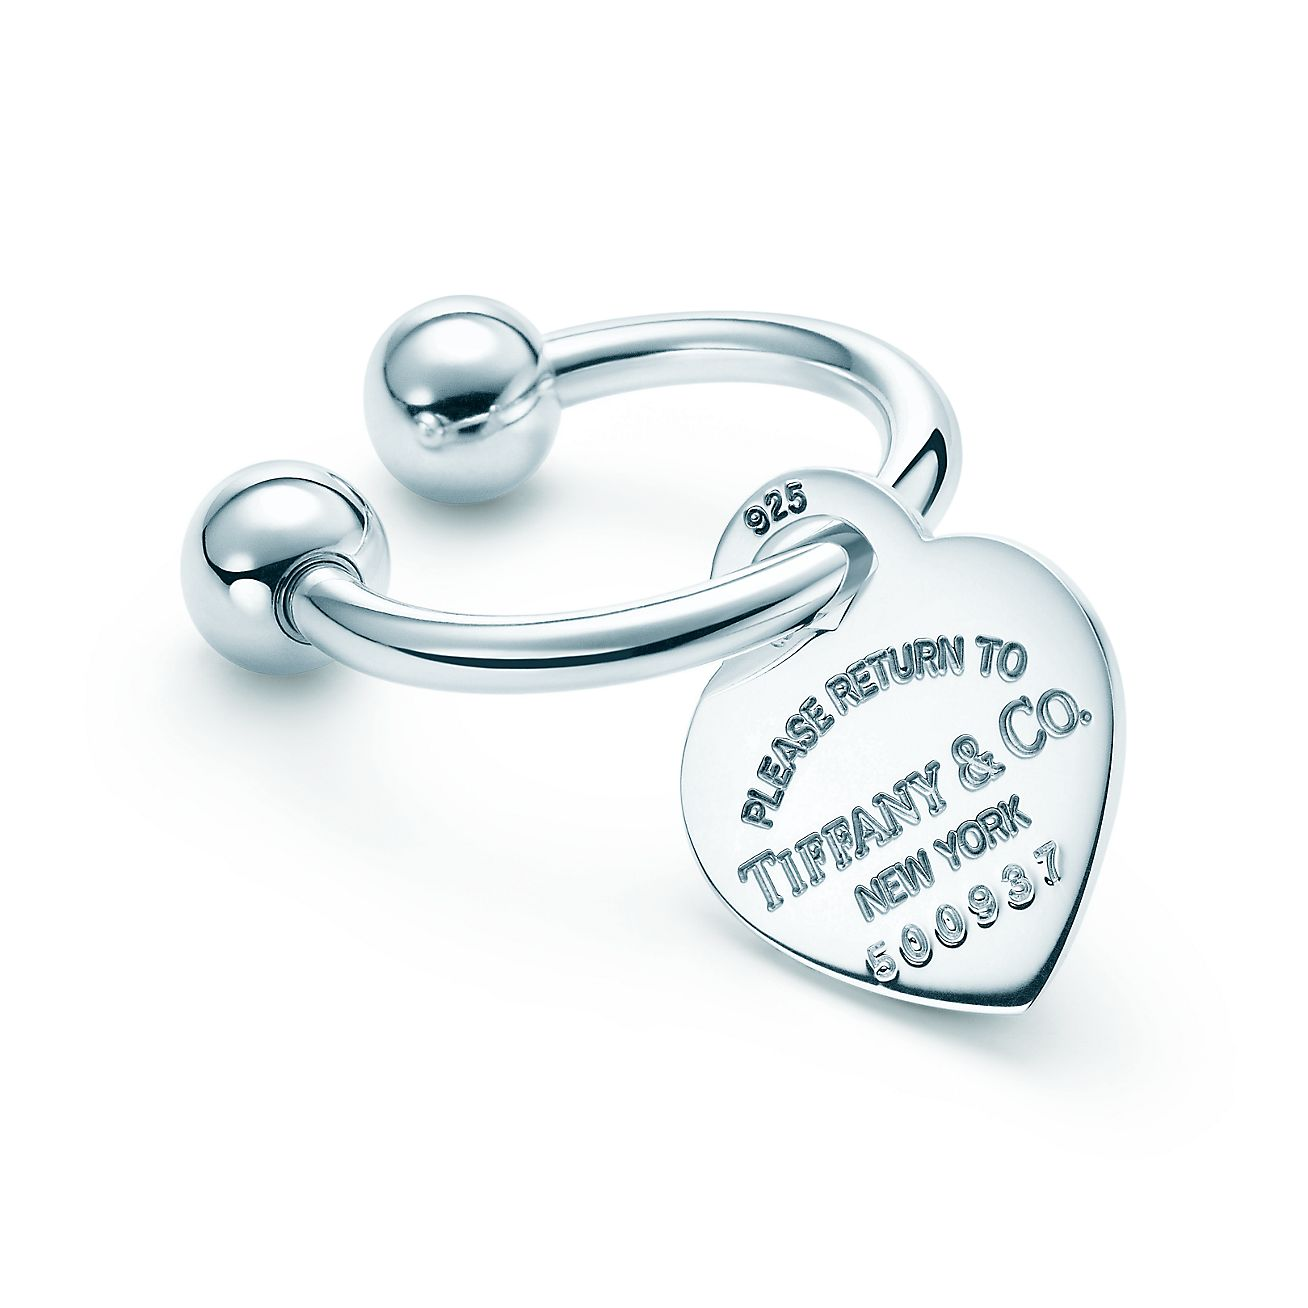 Accessories Key Rings Return To Tiffany Heart Tag Key Ring 15882212 Tiffany Key Rings Return To